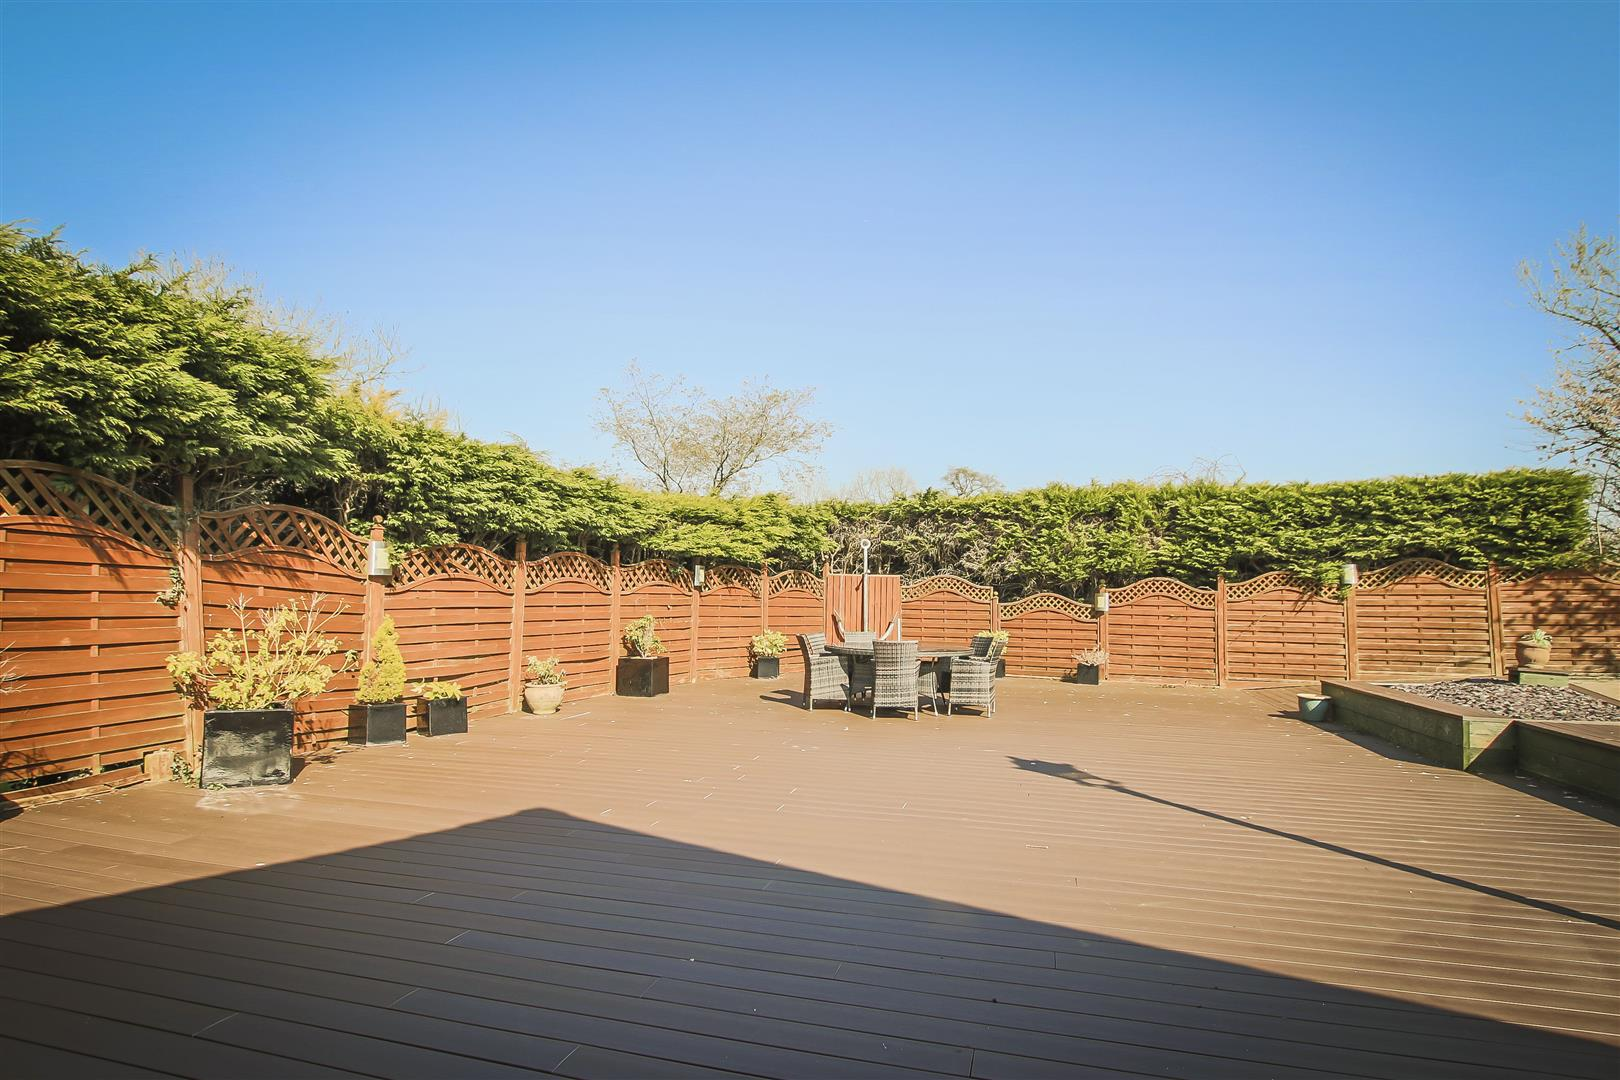 4 Bedroom Barn Conversion For Sale - Image 34